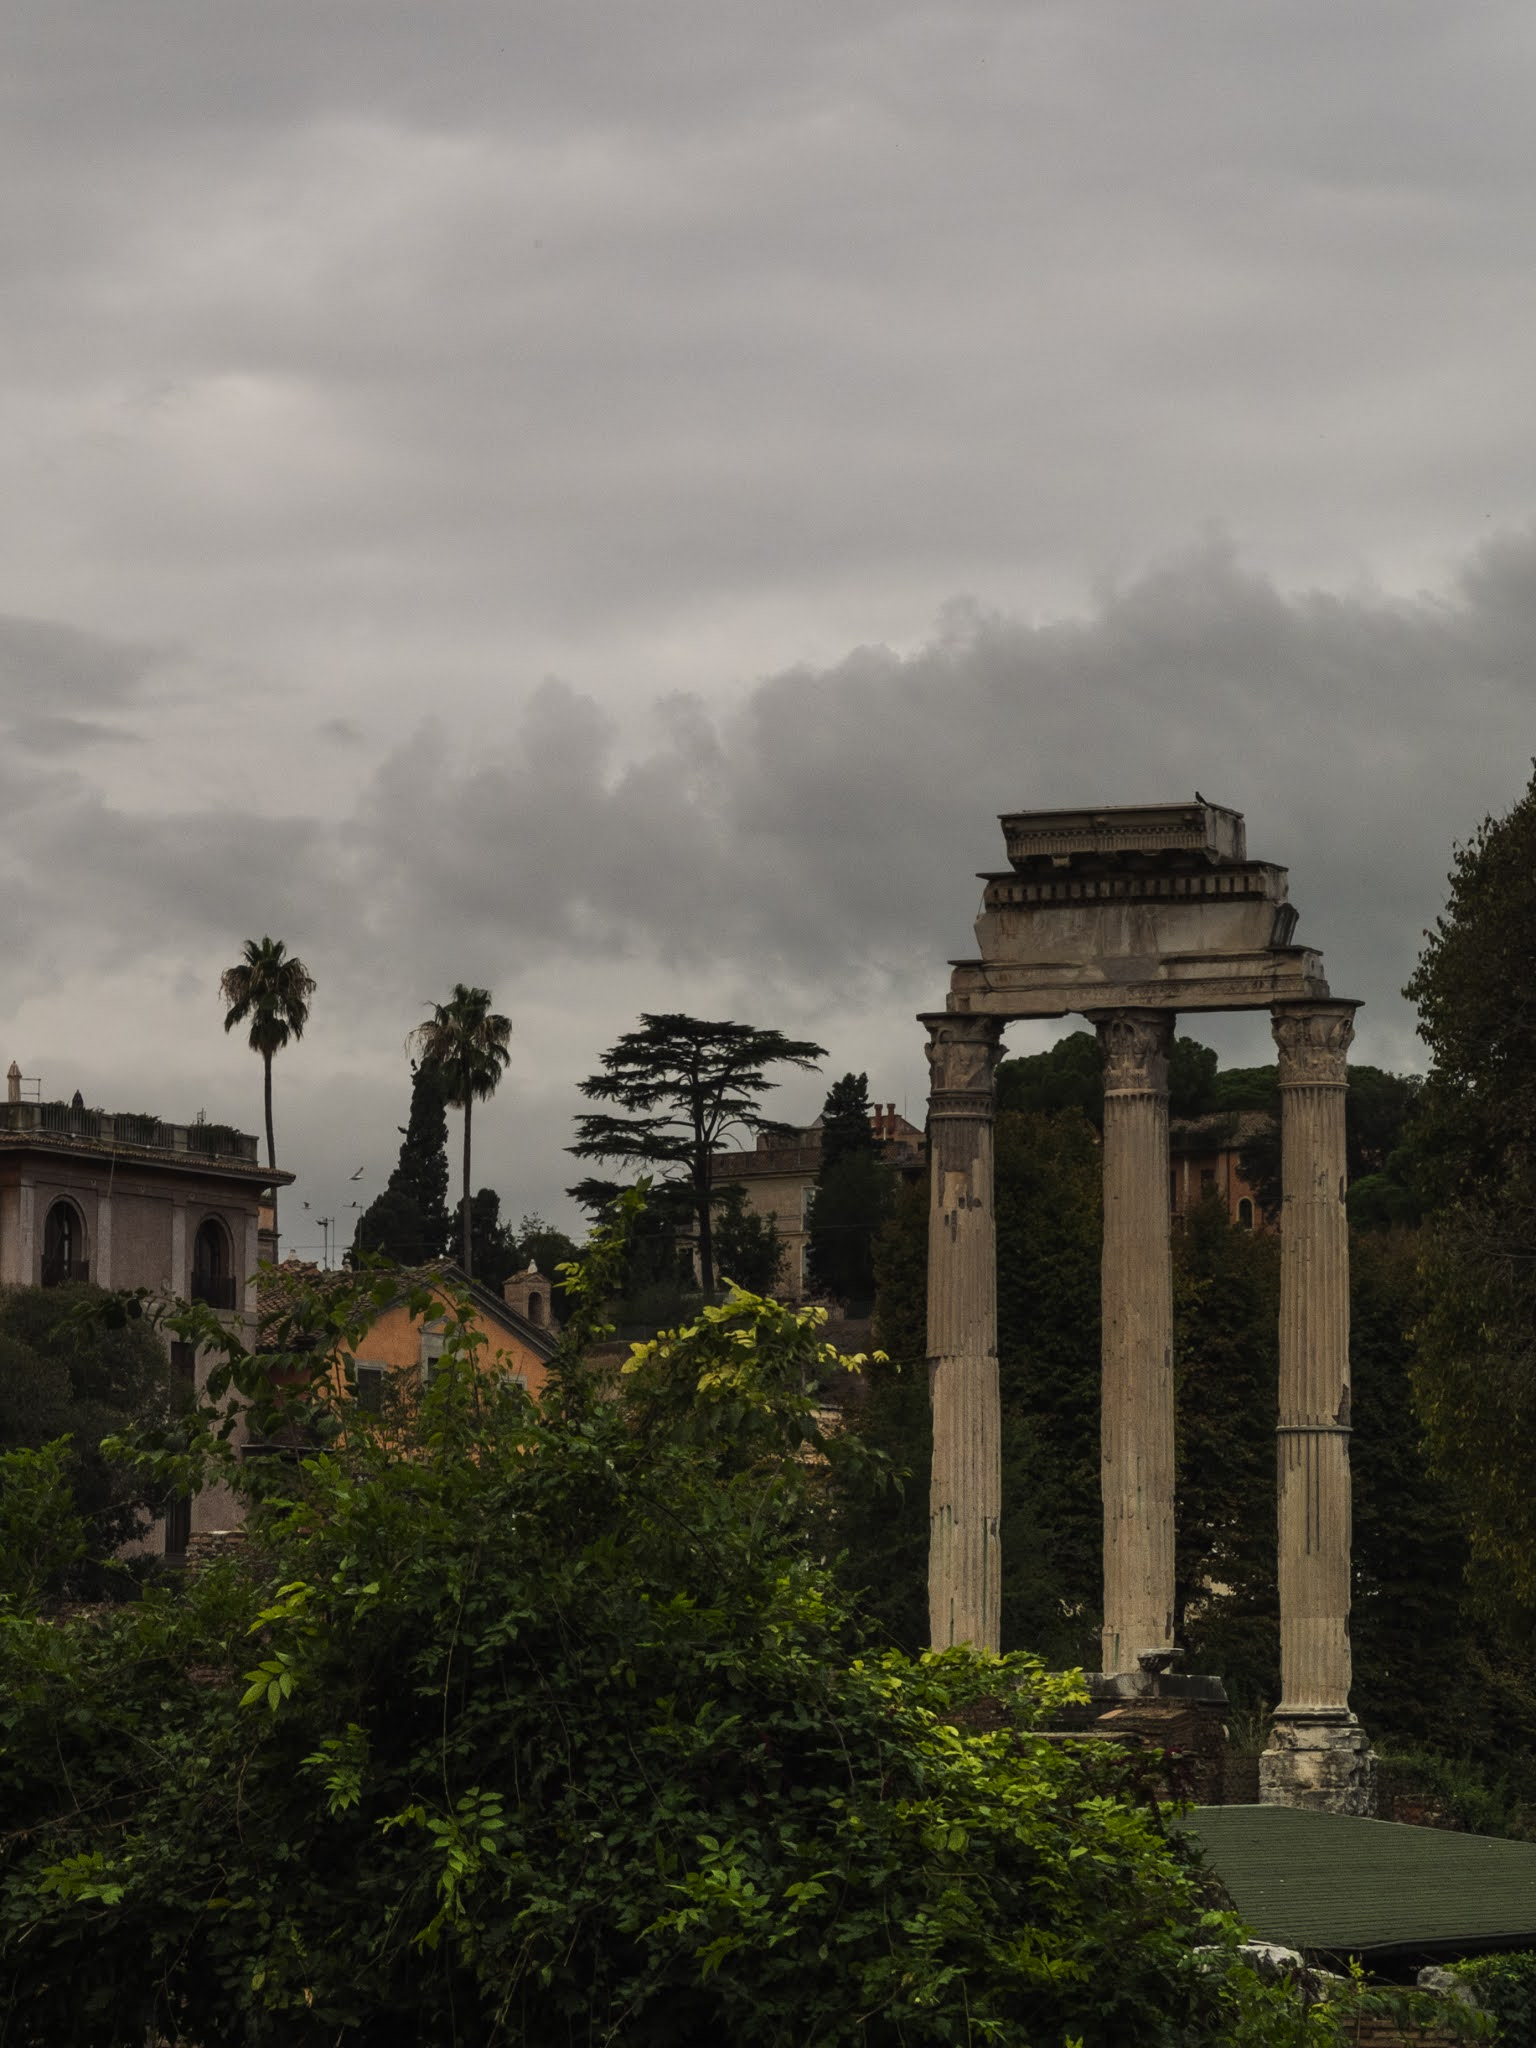 View of the Temple of Castor and Pollux surrounded by various trees.